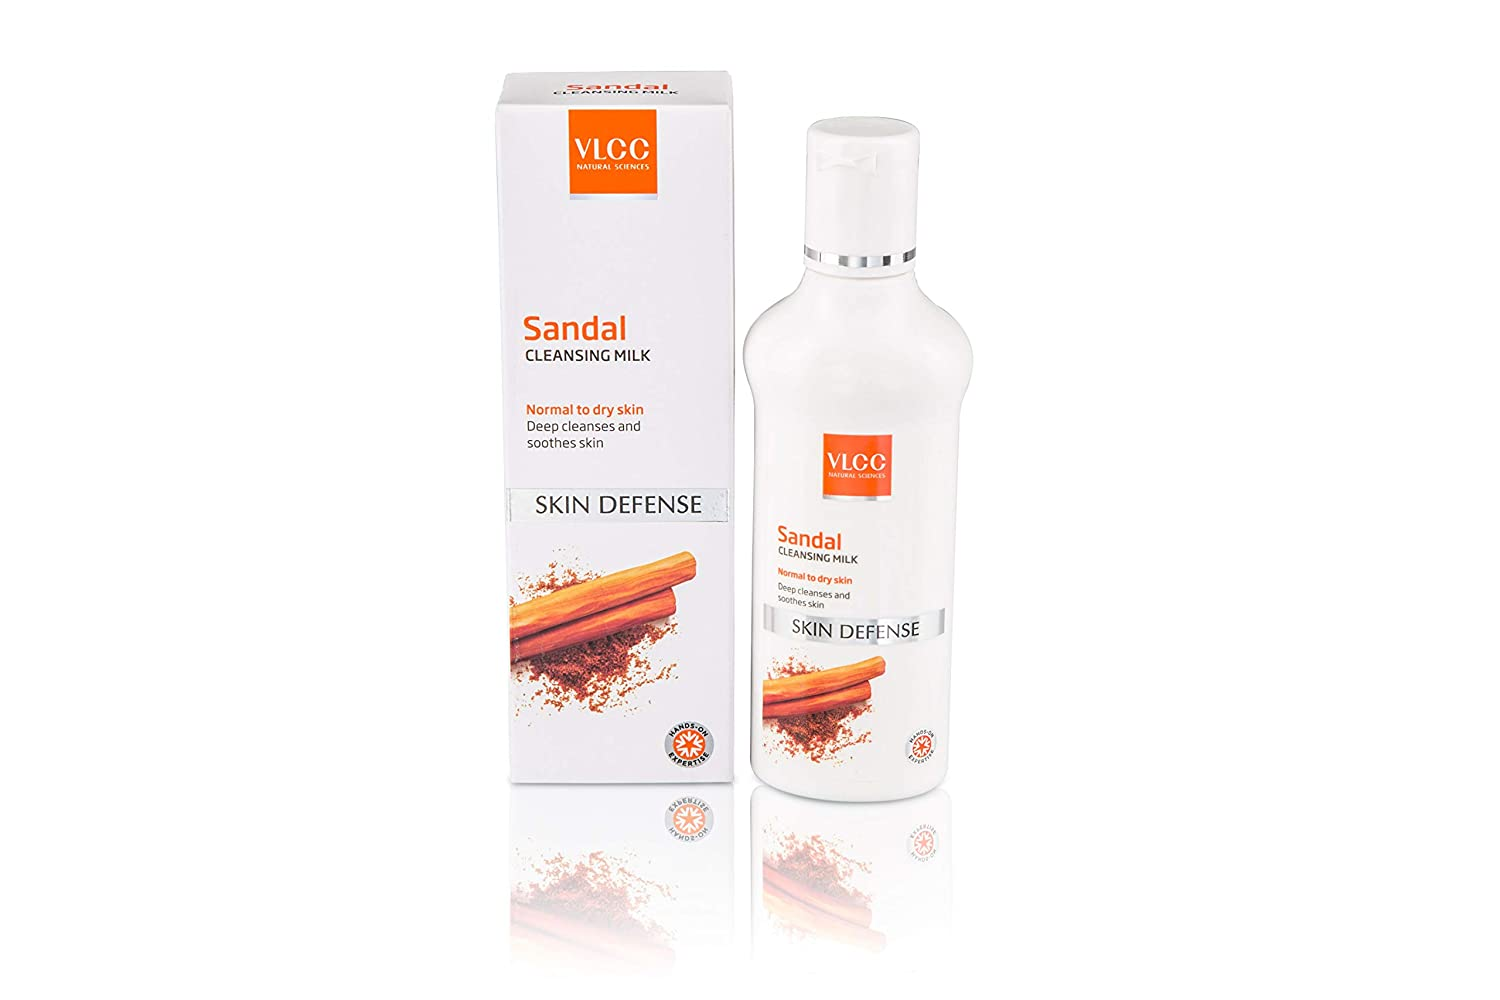 VLCC Skin Defense Sandal Cleansing Milk